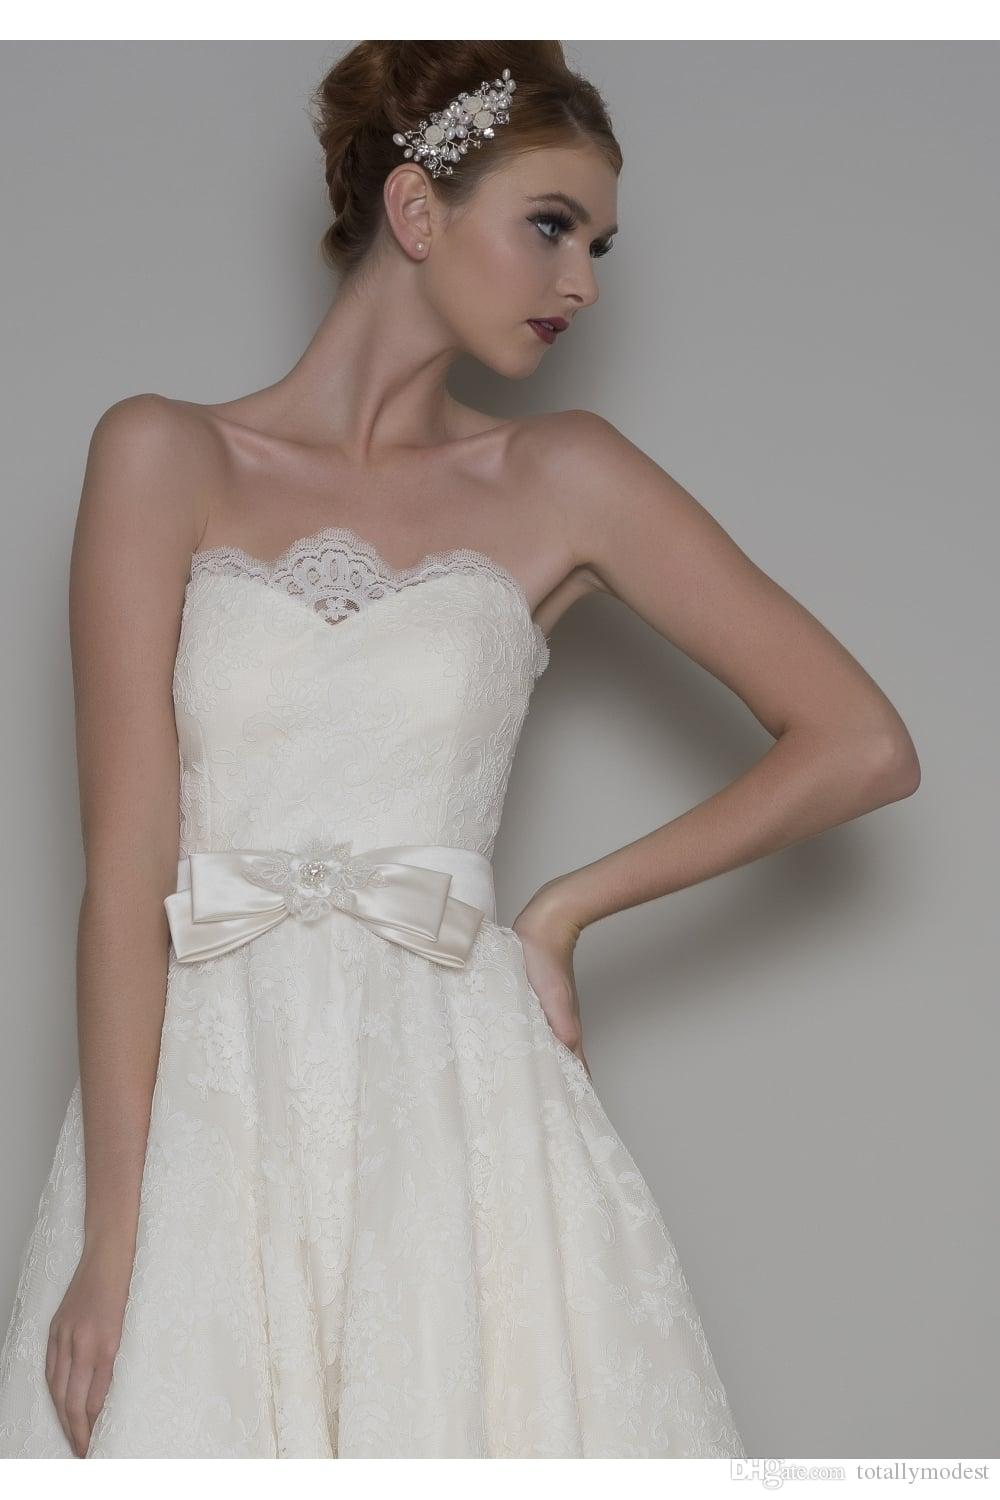 Vintage Lace Tea Length Short Wedding Dresses Sweetheart High Quality Lace A-line Informal Rustic Bridal Gowns For outdoor Wedding